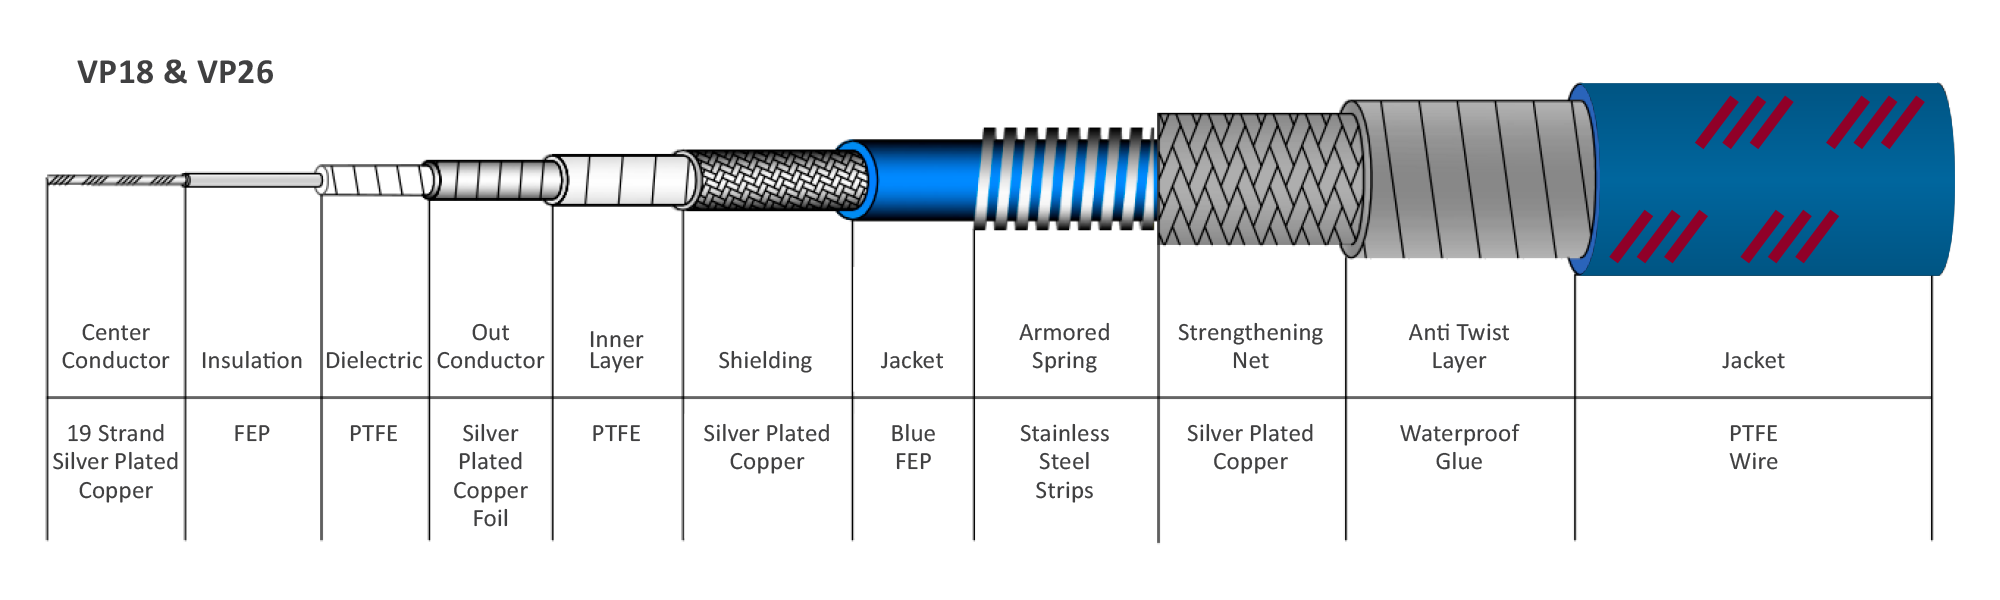 Continuum Technologies - Vero RF Cable Series - veroPHASE - Cable Structure VP18, VP26